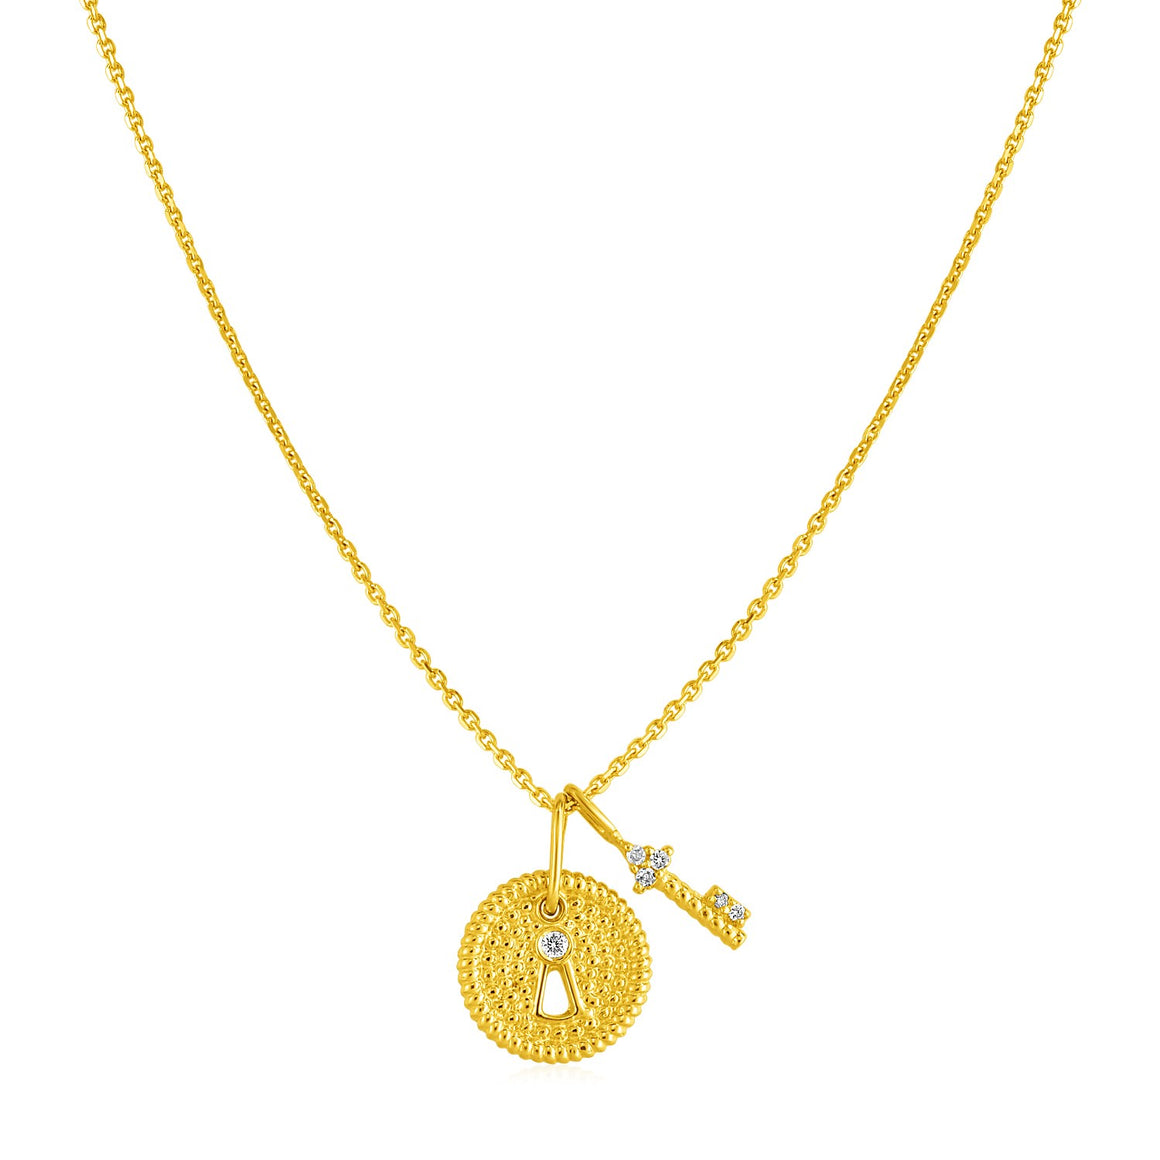 14k Yellow Gold Necklace with Lock and Key Pendant and Diamond